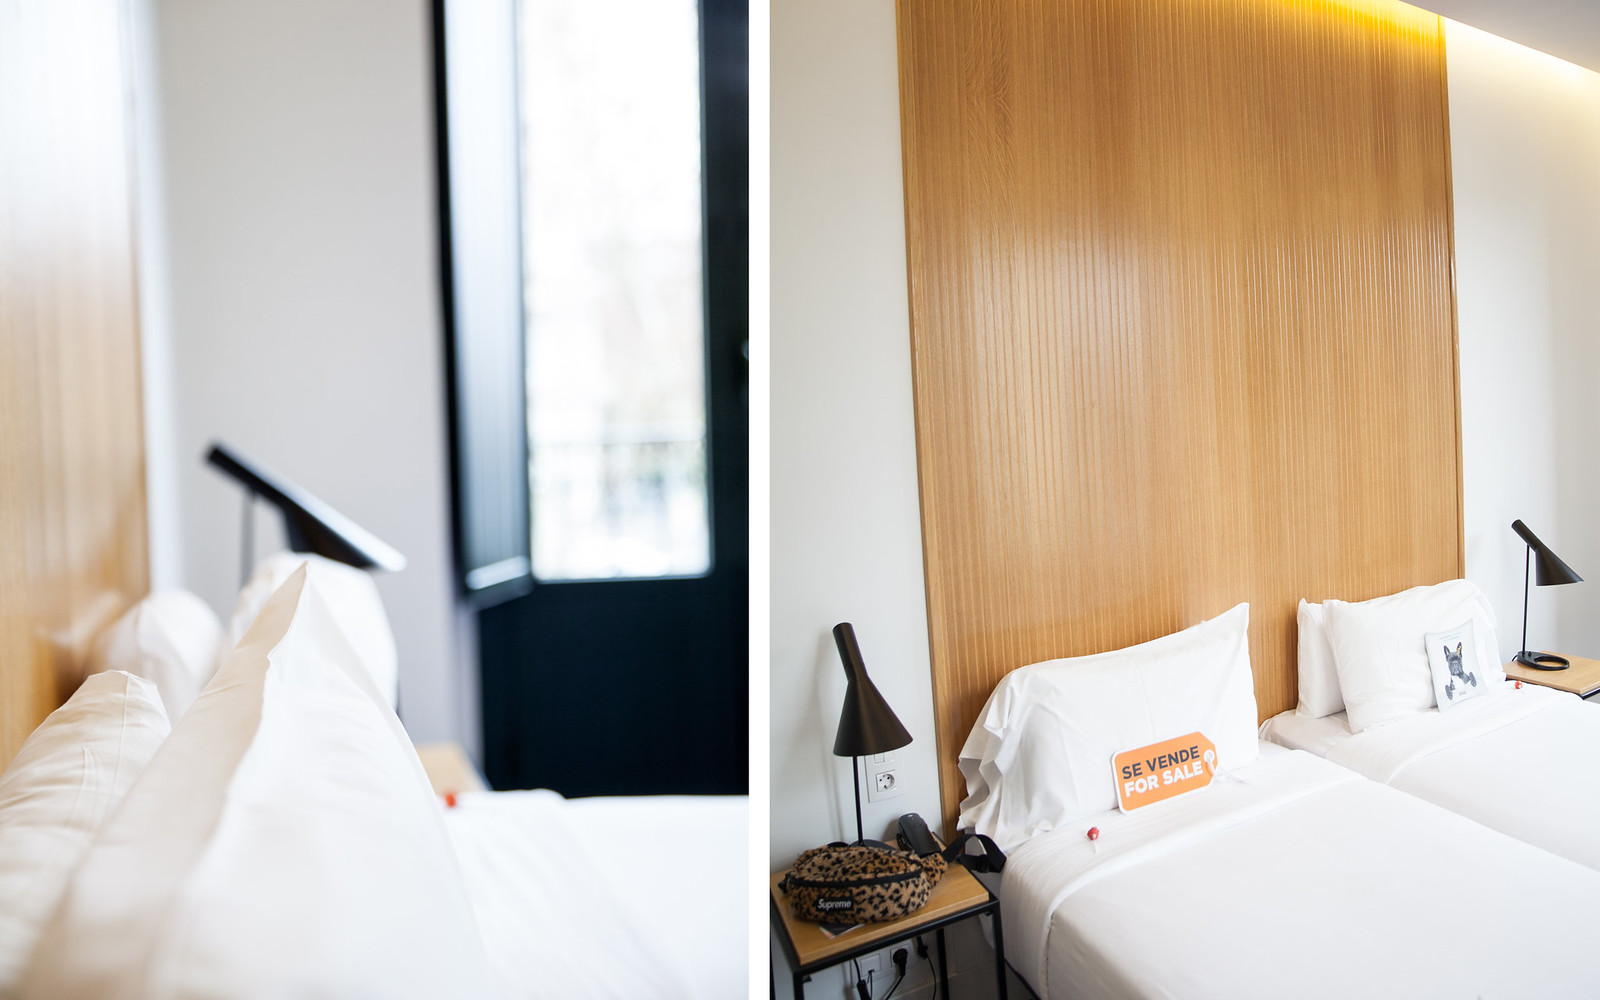 sleep atocha hotel madrid por 50 euros